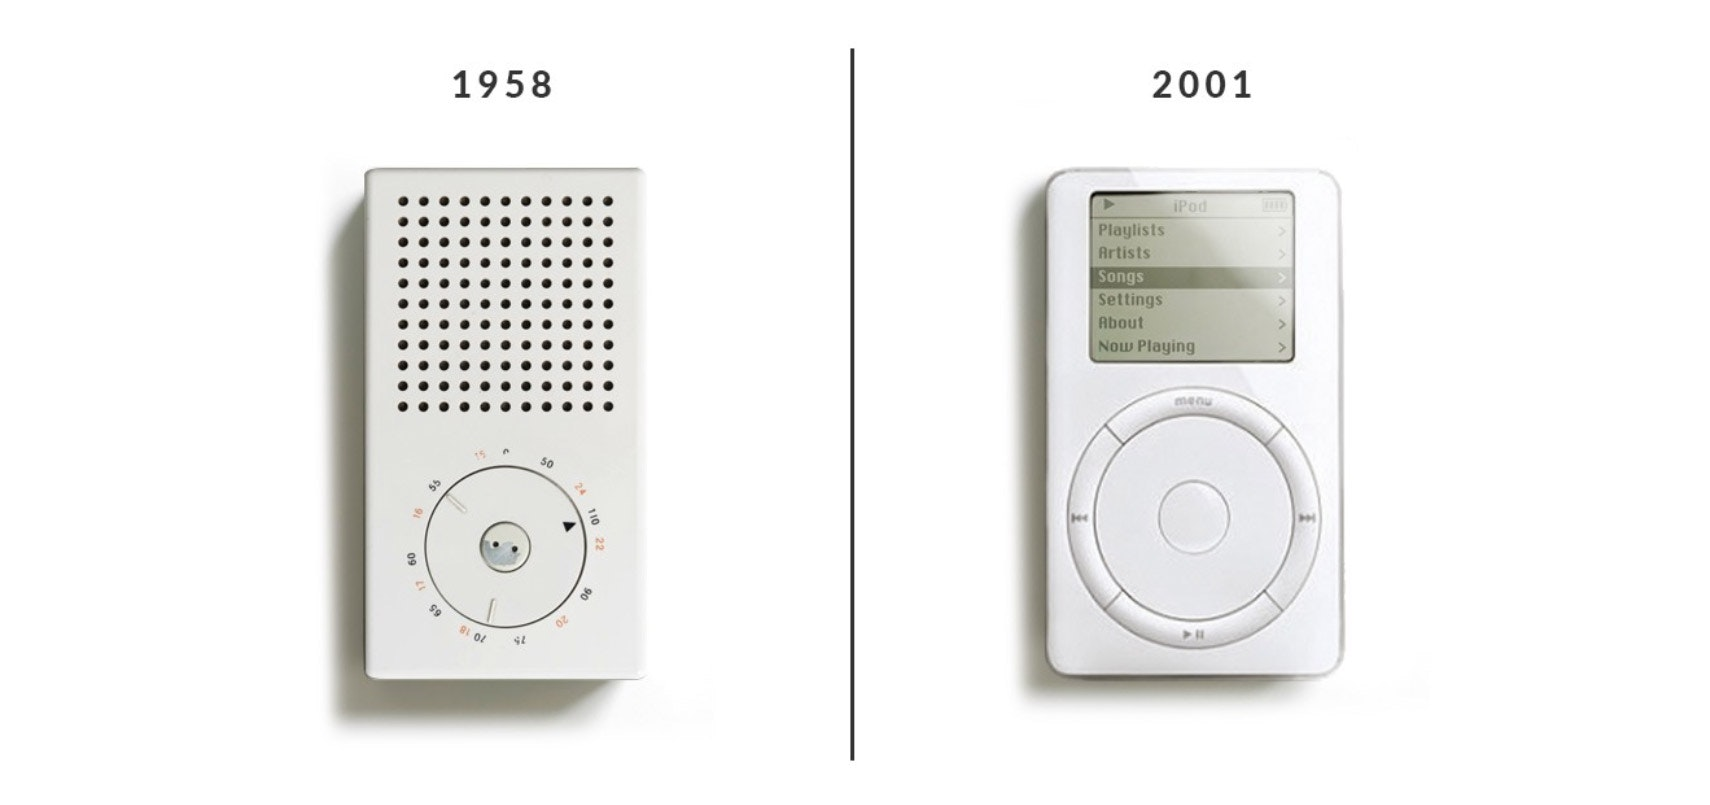 Braun T3 transmitter radio and the first-generation Apple iPod.